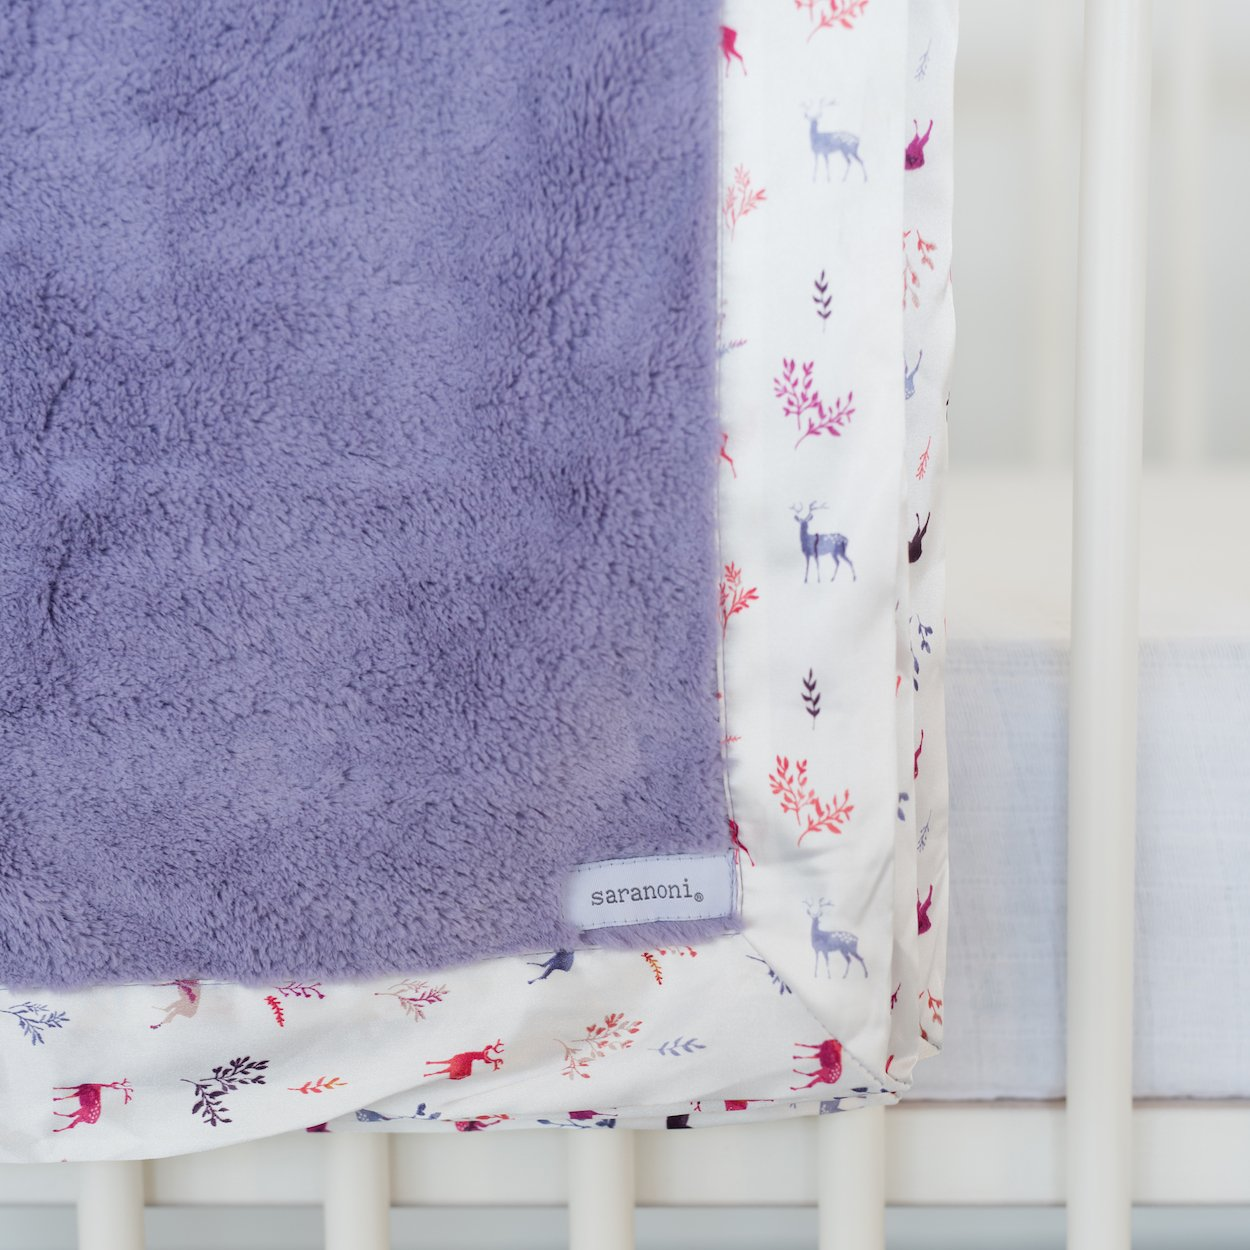 Saranoni Satin Border Receiving Blankets for Babies Super Soft Lush Luxury Baby Blanket (Lilac Lush Deer Satin Border, Receiving Blanket 30'' x 40'')